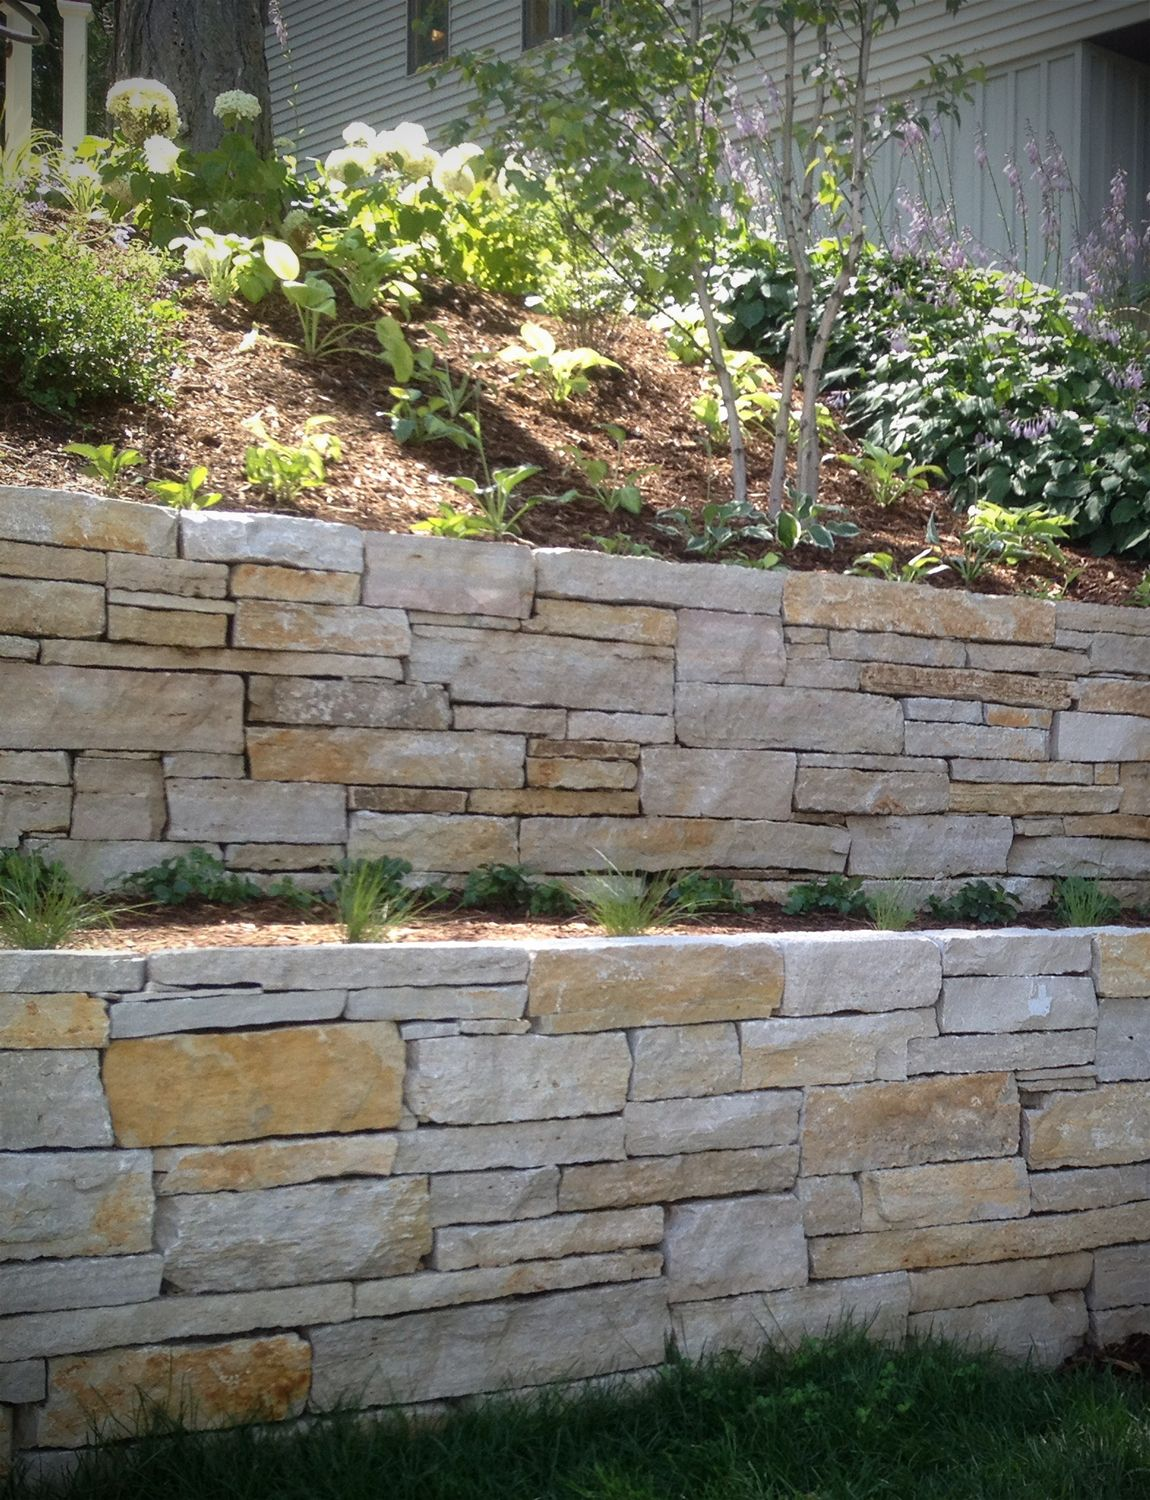 Dry Stacked Stone Retaining Wall Stone Step Landscape Design Veneer Stone In 2020 Landscaping Retaining Walls Stone Retaining Wall Landscape Design